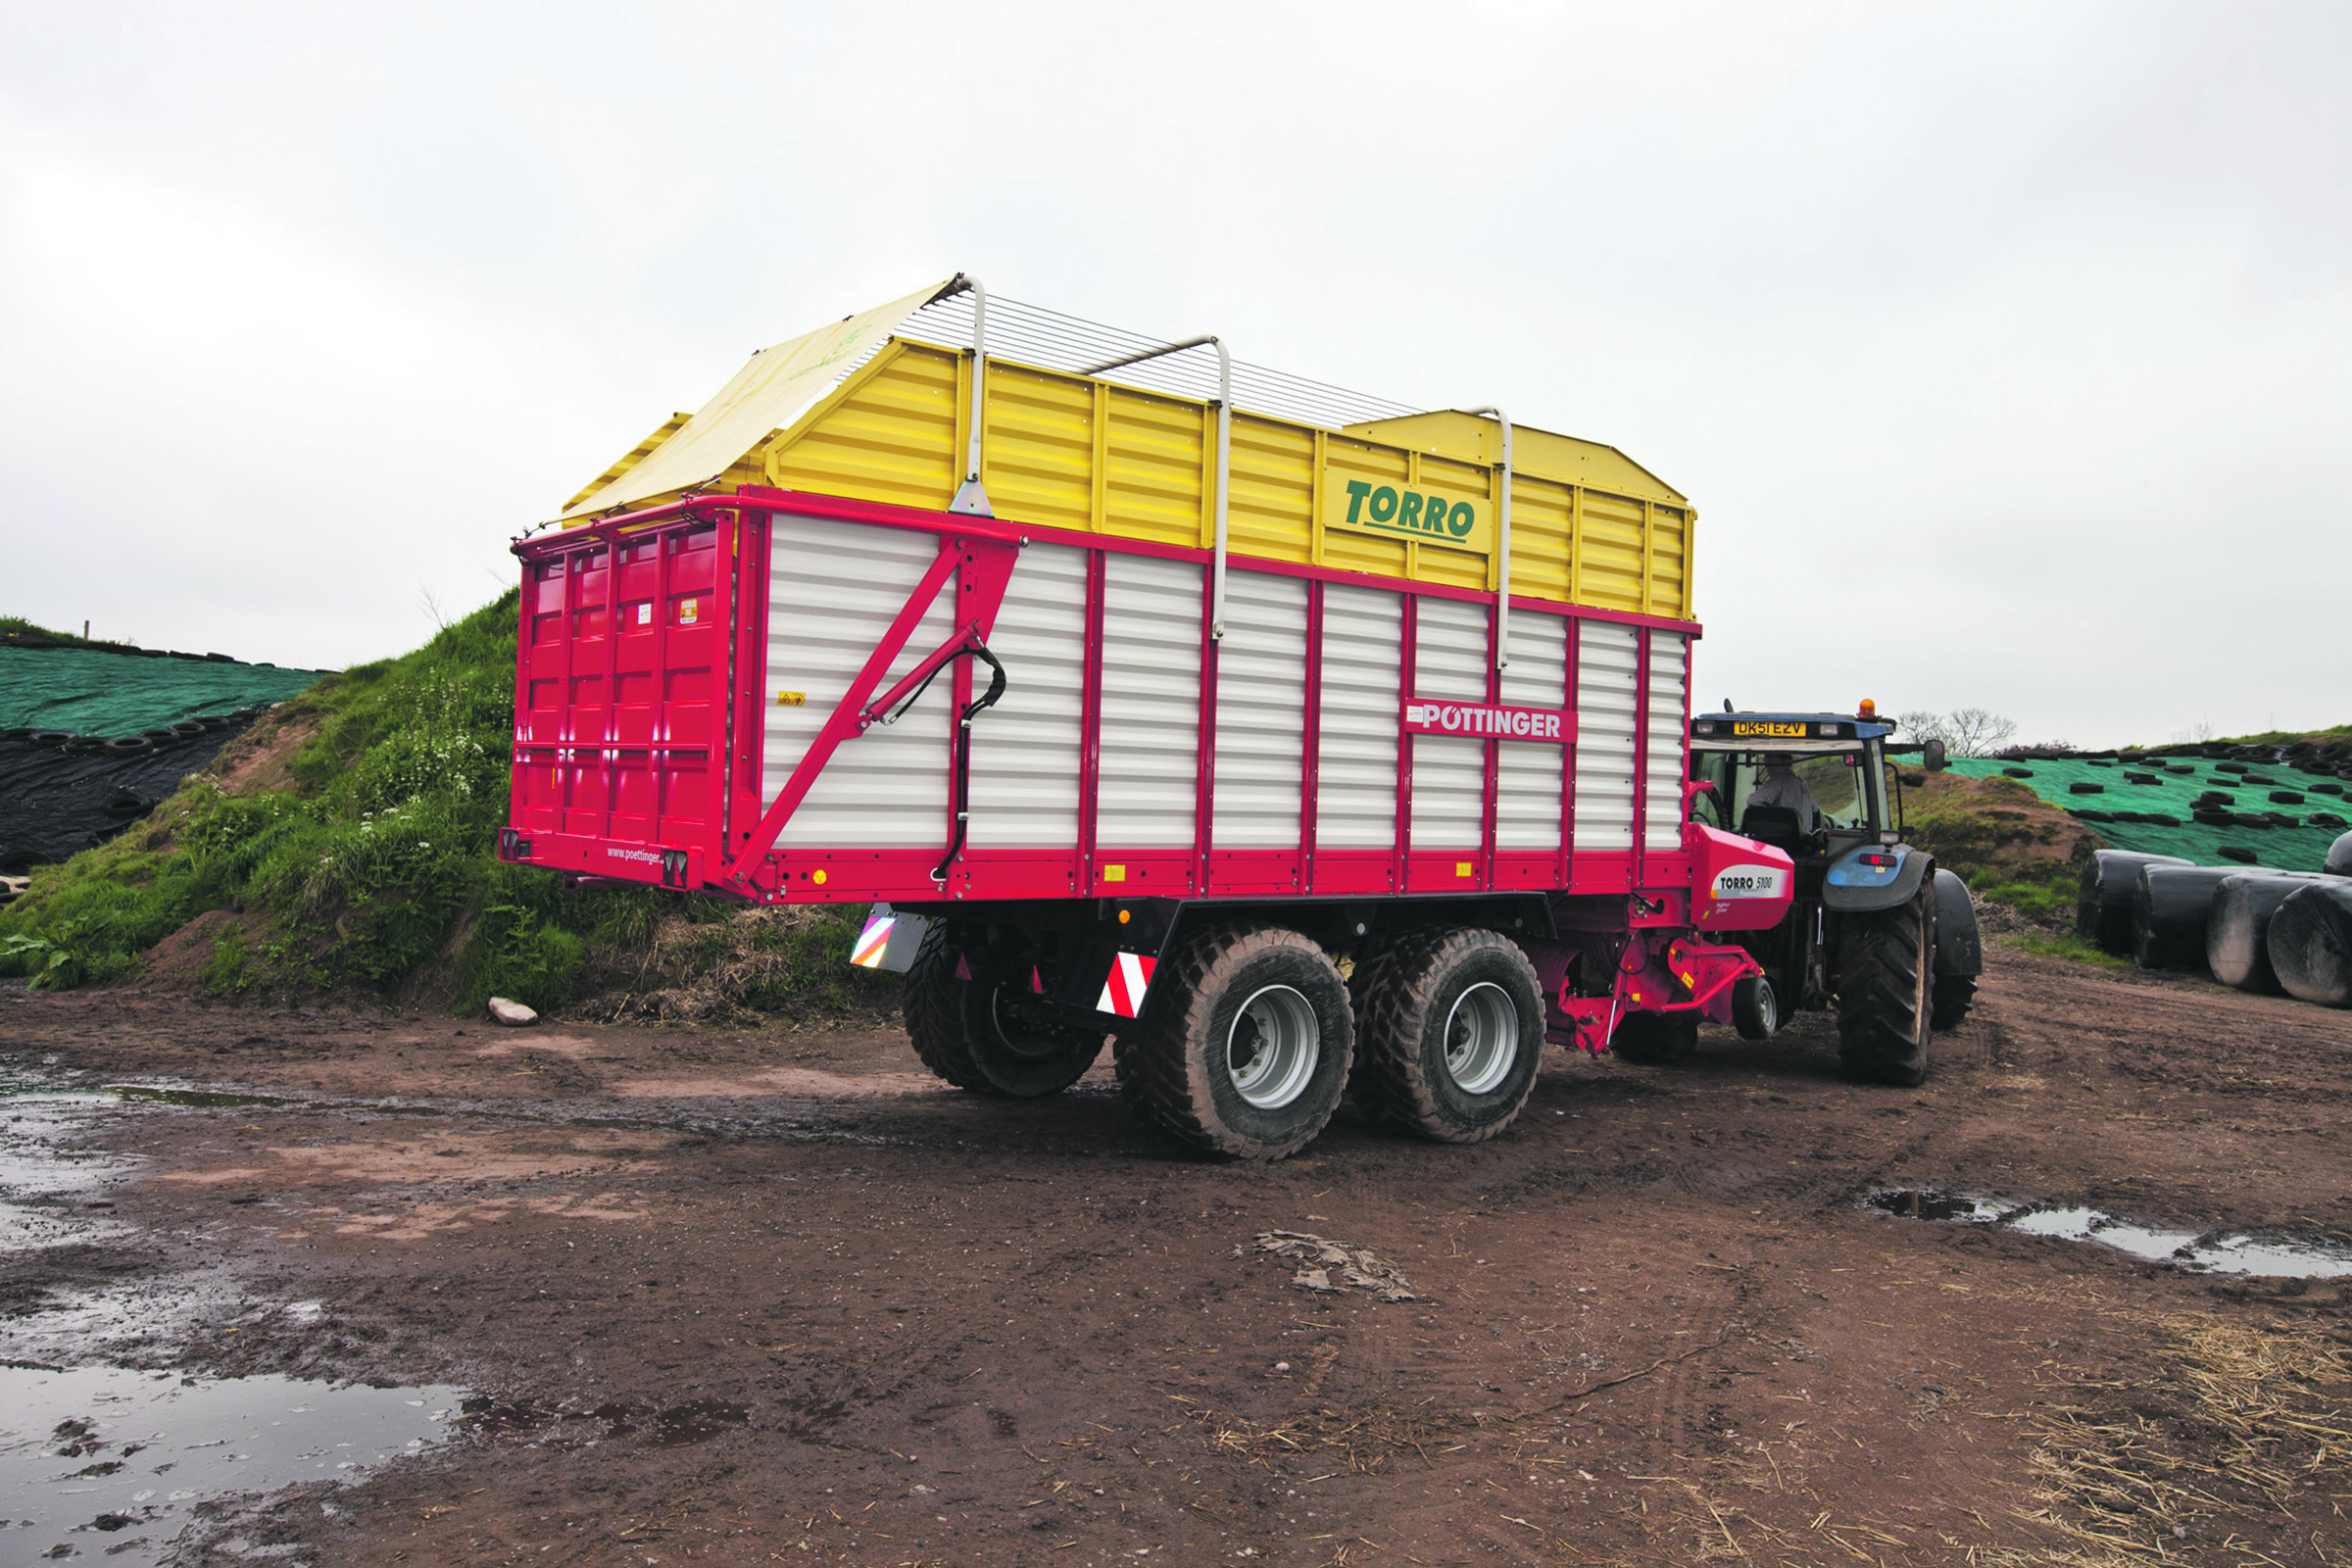 Forage wagon test: Pottinger Torro 5100 Powermatic